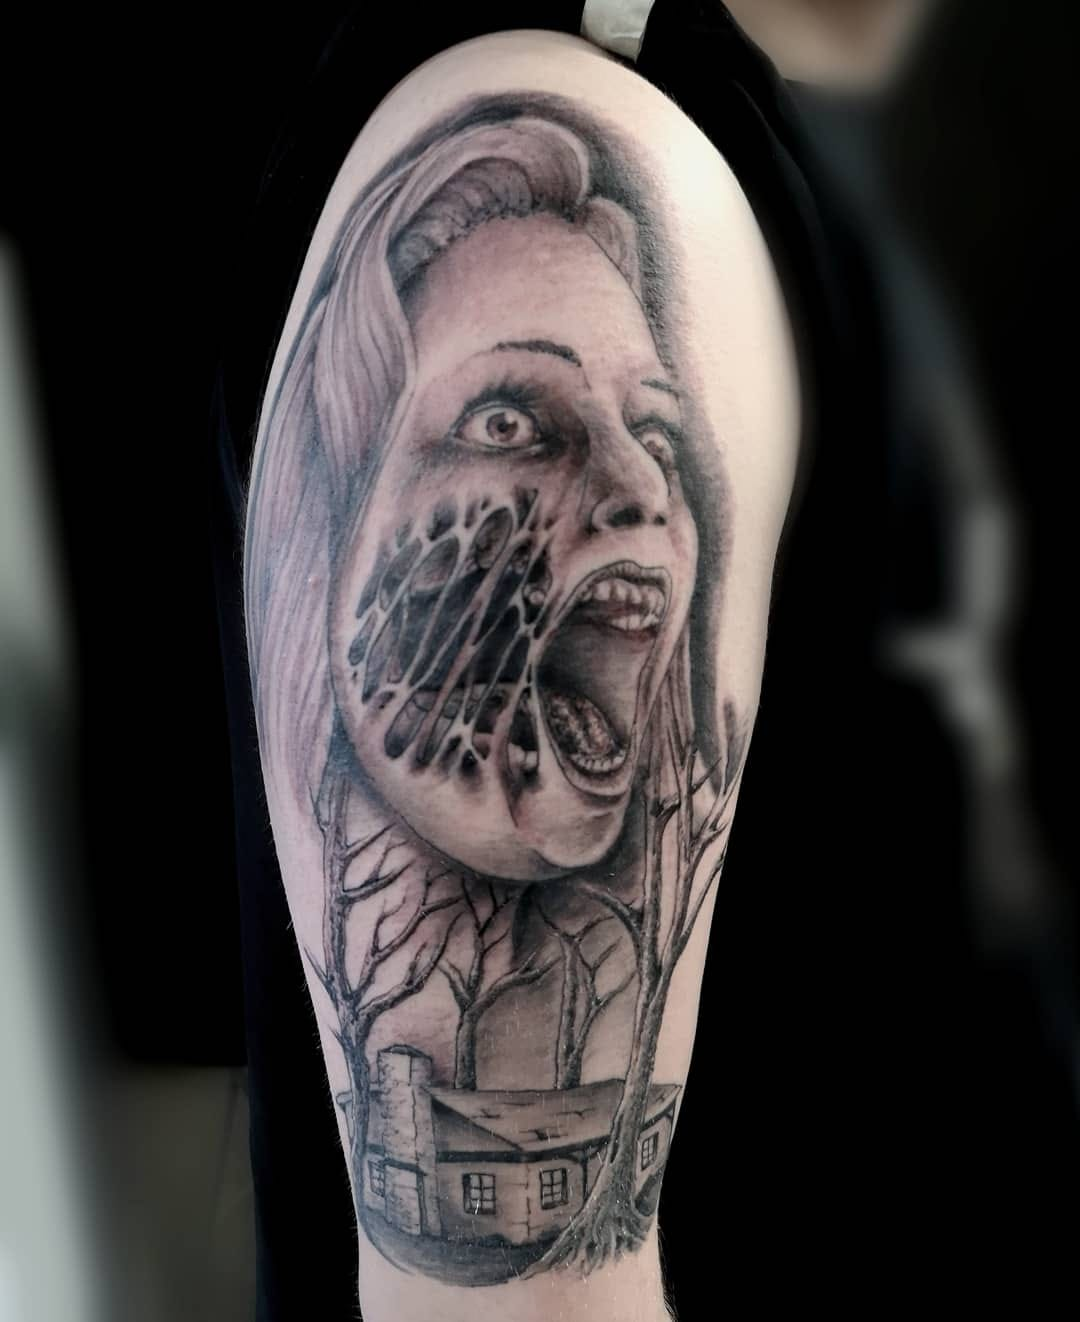 Normans Tattoo and Art Gallery - Dave Wesel